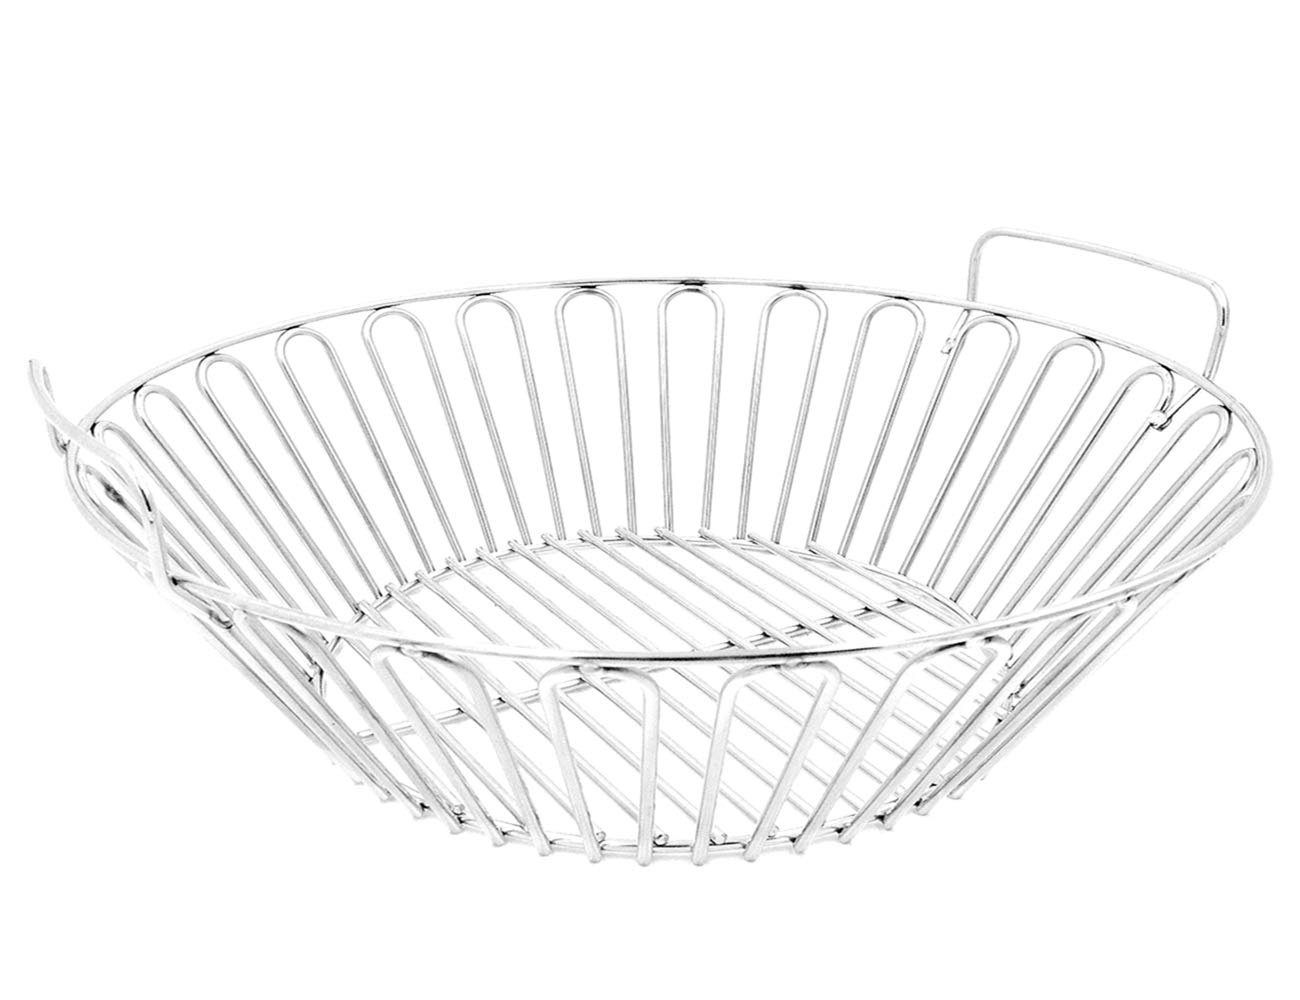 RunTo 19 inch Stainless Steel Charcoal Ash Basket Fits for The Kamdo Joe Big Joe and Other Grills by RunTo